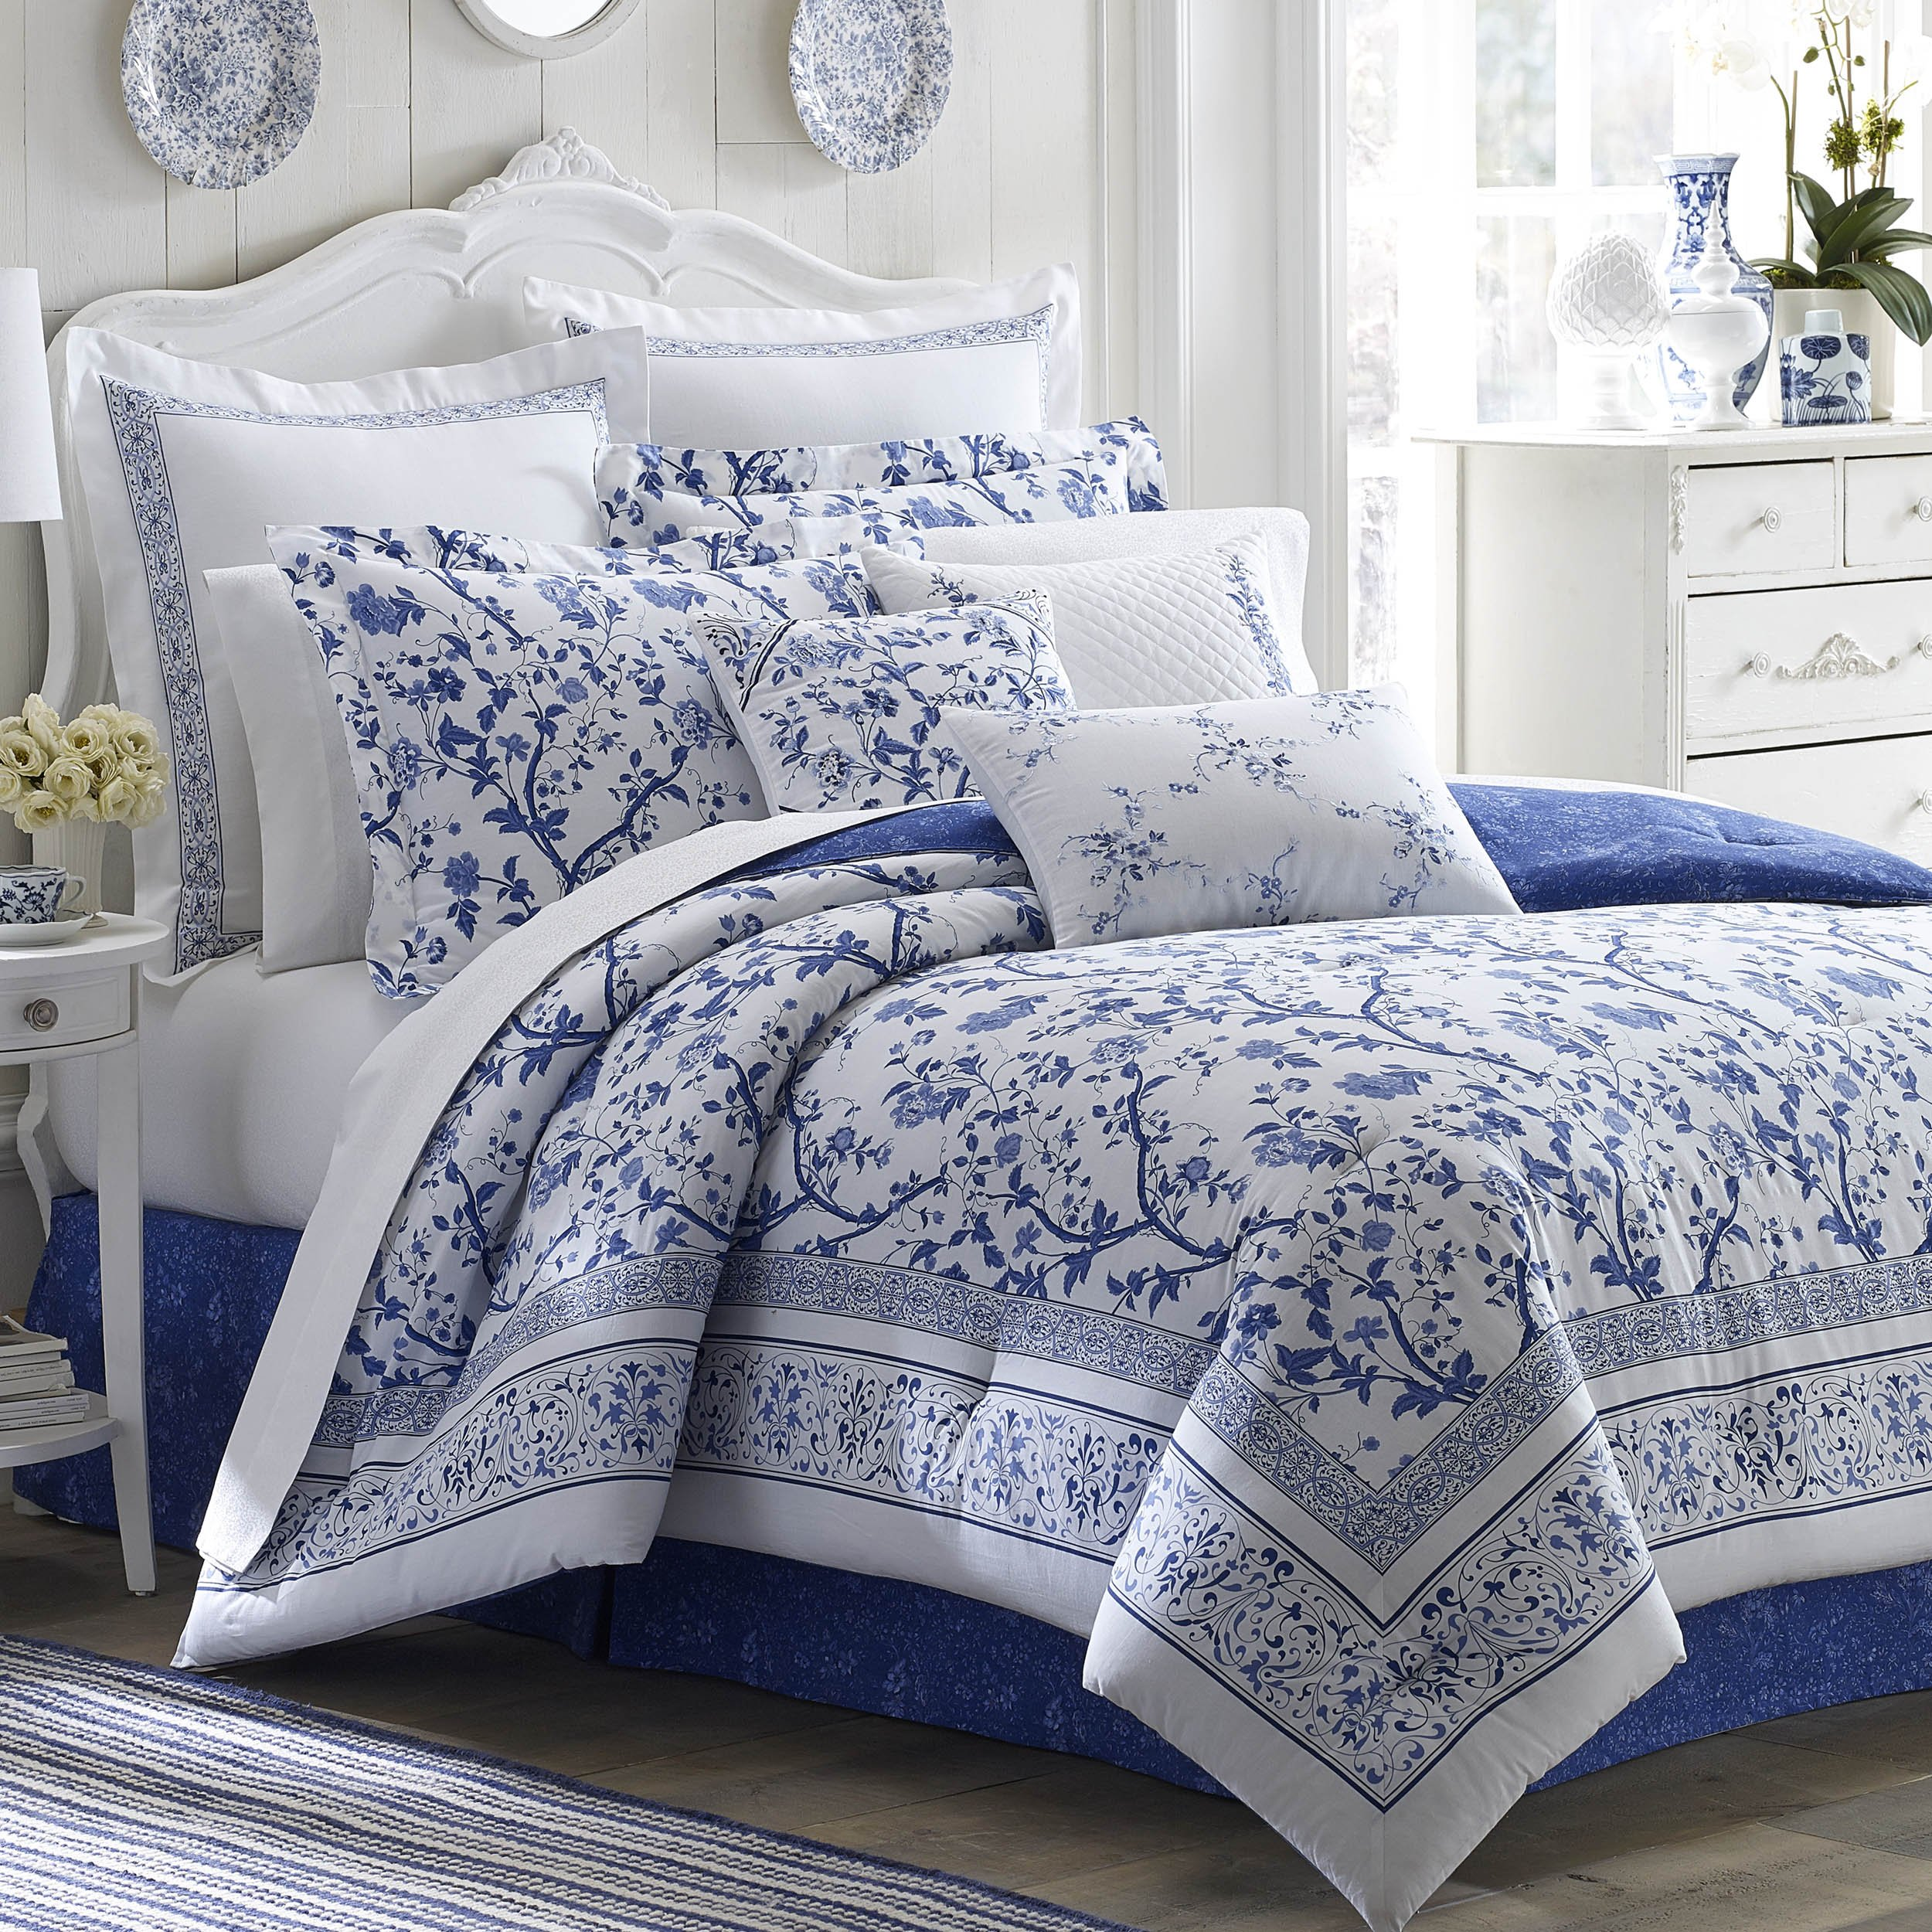 Laura Ashley 211391 Charlotte Comforter Set, Blue, Queen